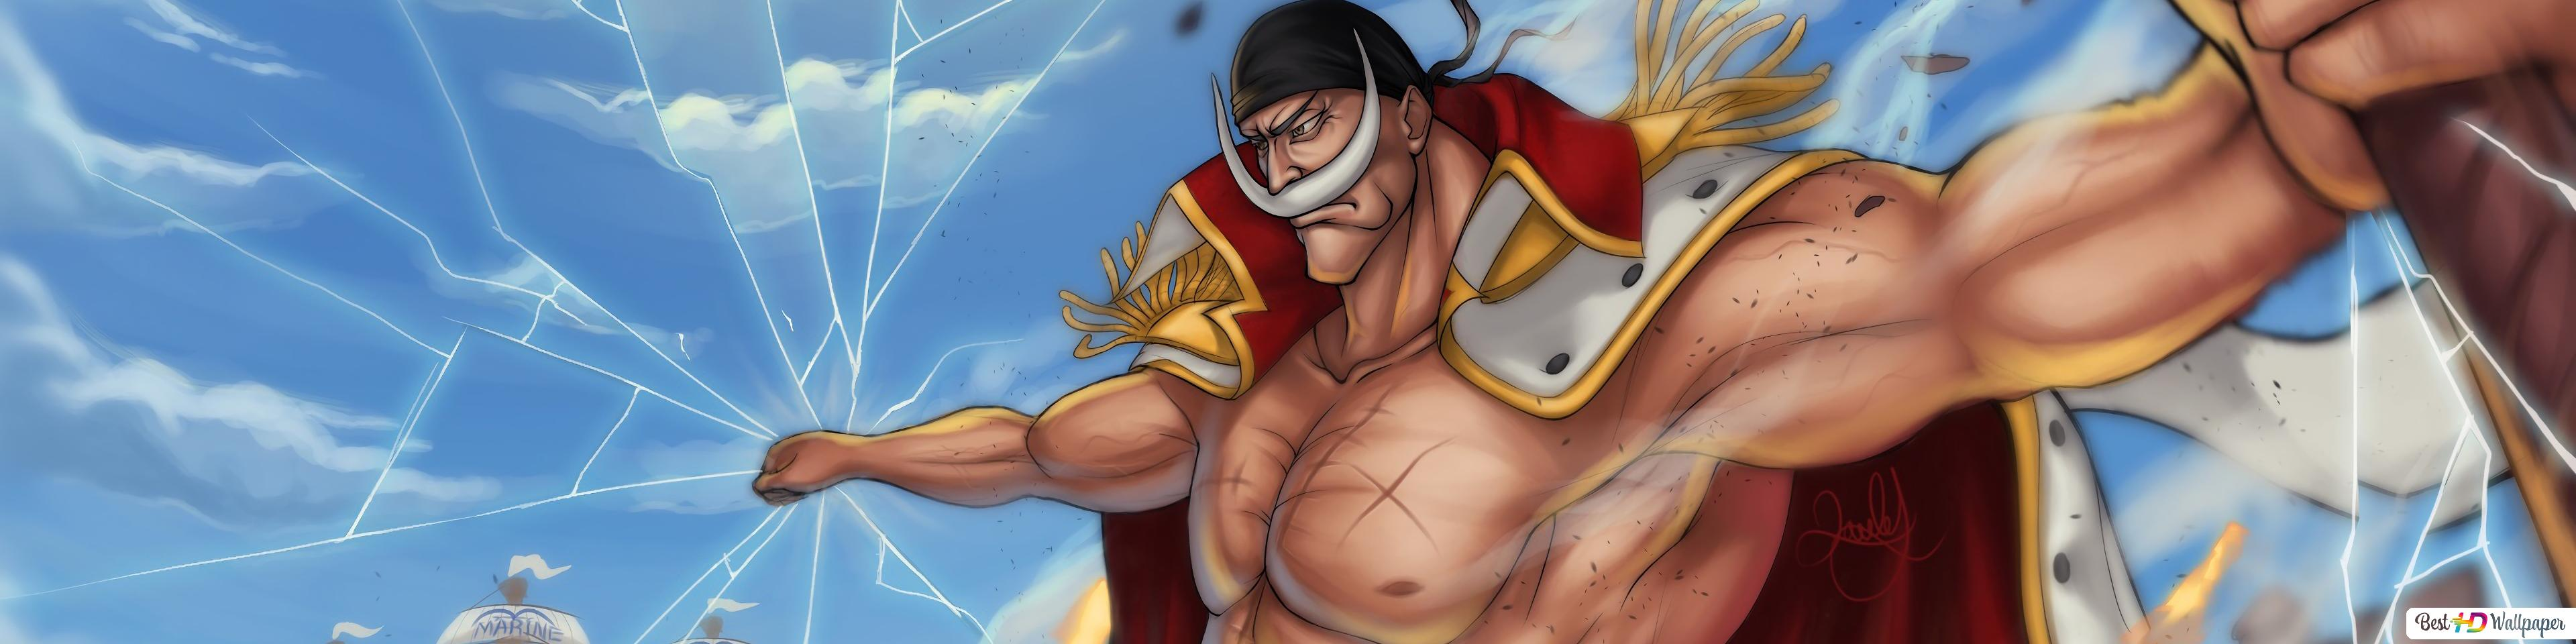 One Piece Whitebeard Edward Newgate Hd Wallpaper Download